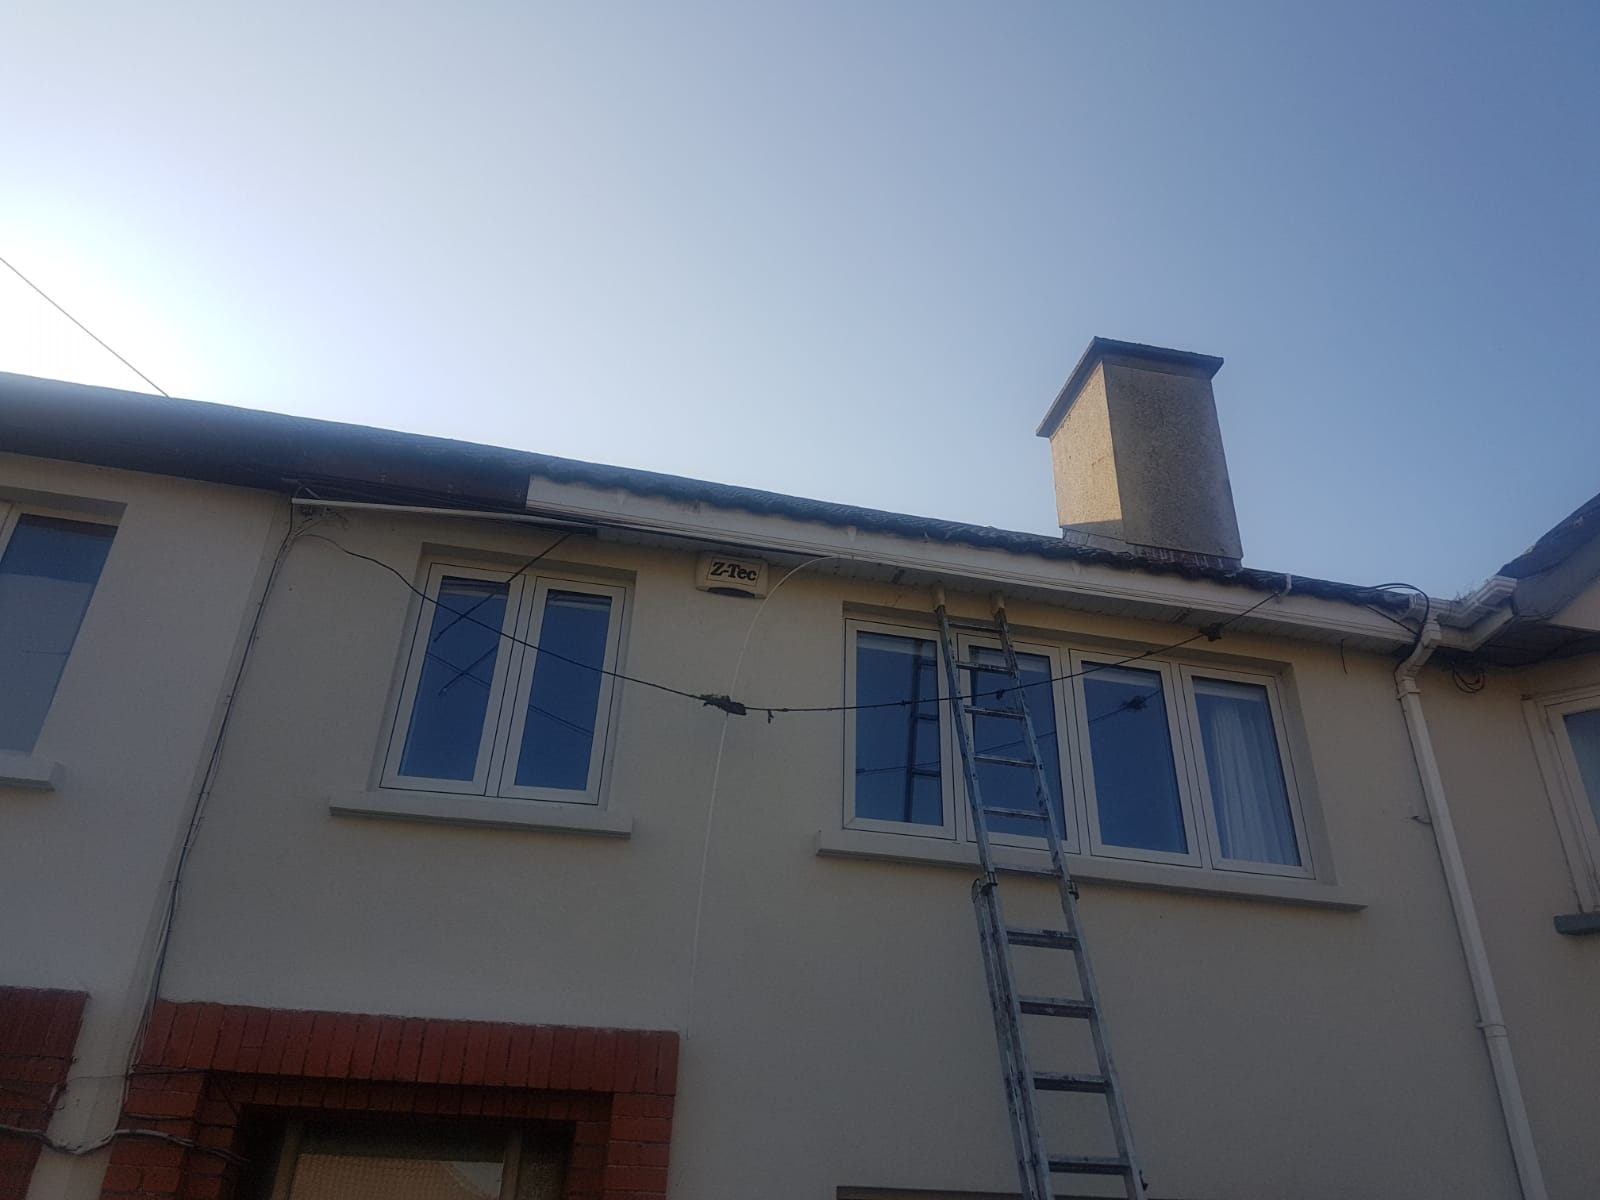 Gutter Repairs in Celbridge, Co. Kildare